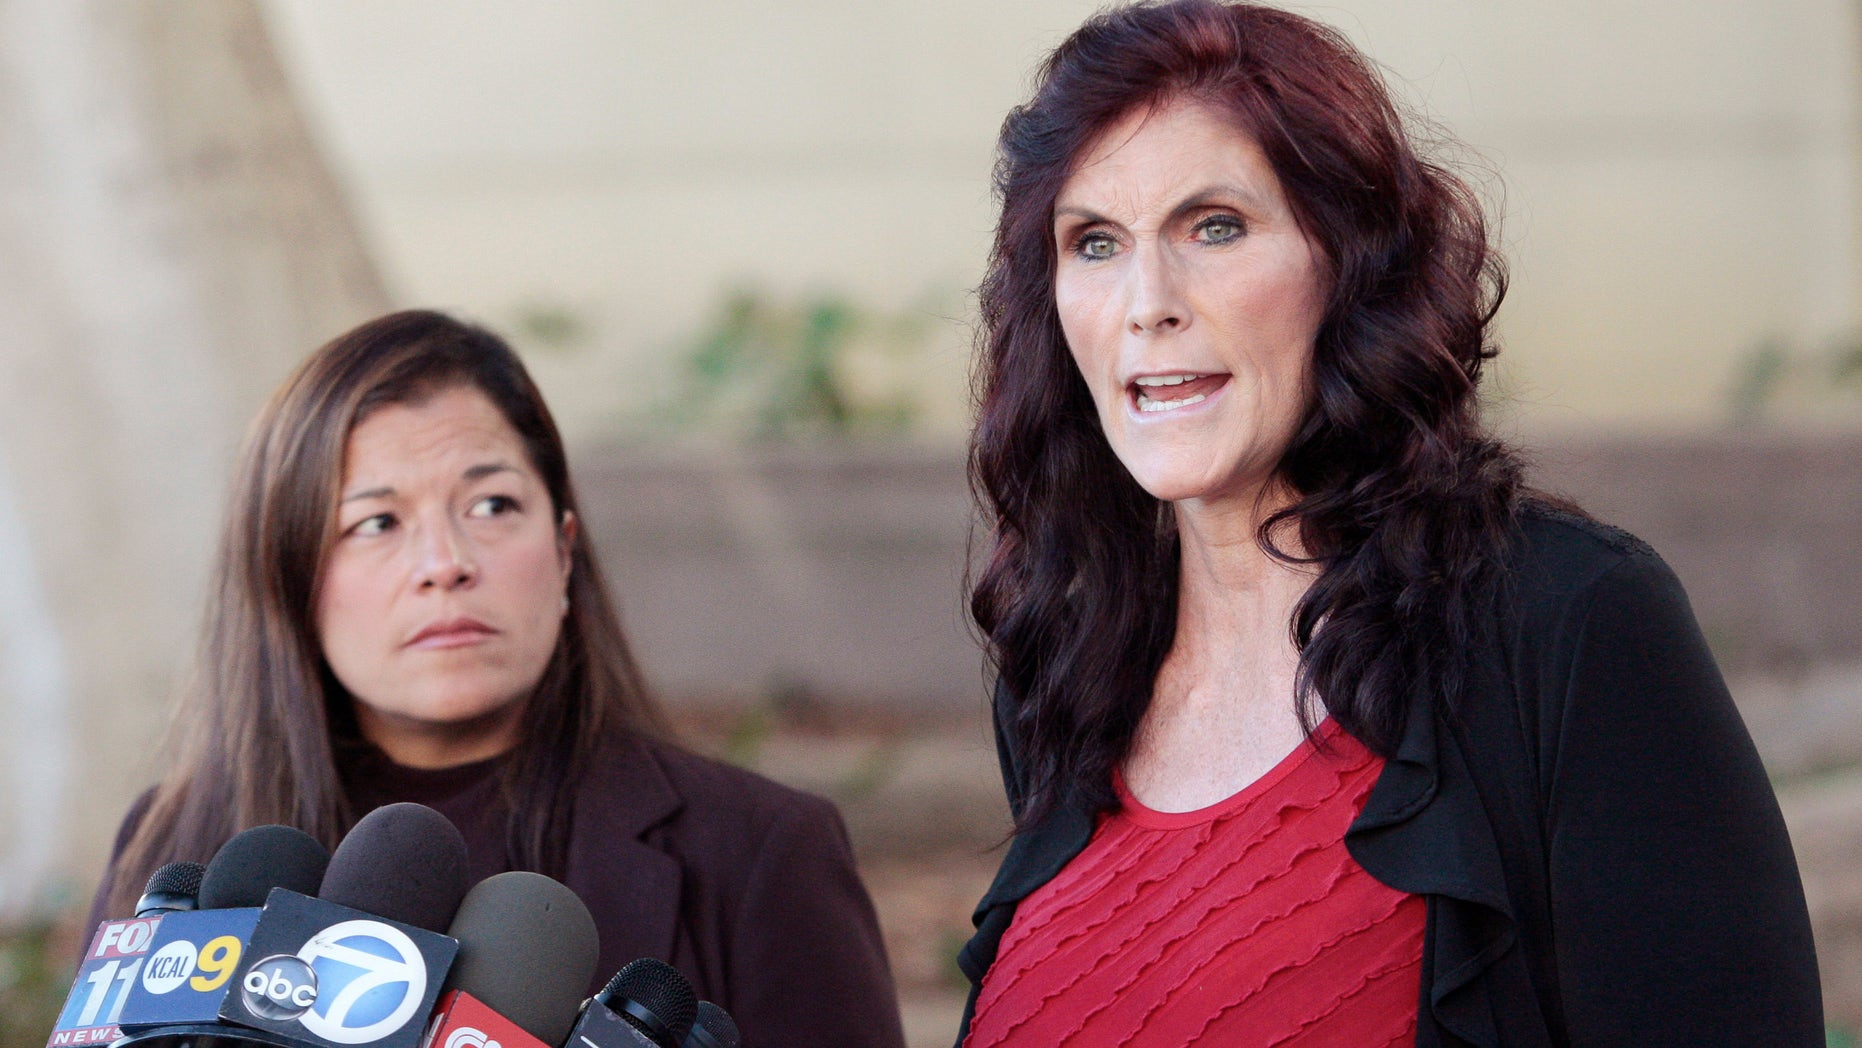 """FILE - In this Thursday, Sept. 20, 2012, file photo, Cindy Lee Garcia, one of the actresses in """"Innocence of Muslims,"""" right, and attorney M. Cris Armenta hold a news conference in Los Angeles asking a judge to issue an injunction demanding a 14-minute trailer for the film be pulled from YouTube. A federal appeals court on Monday, May 18, 2015 overturned an order for YouTube to take down the anti-Muslim film that sparked violence in the Middle East and death threats to actors. (AP Photo/Jason Redmond, File)"""